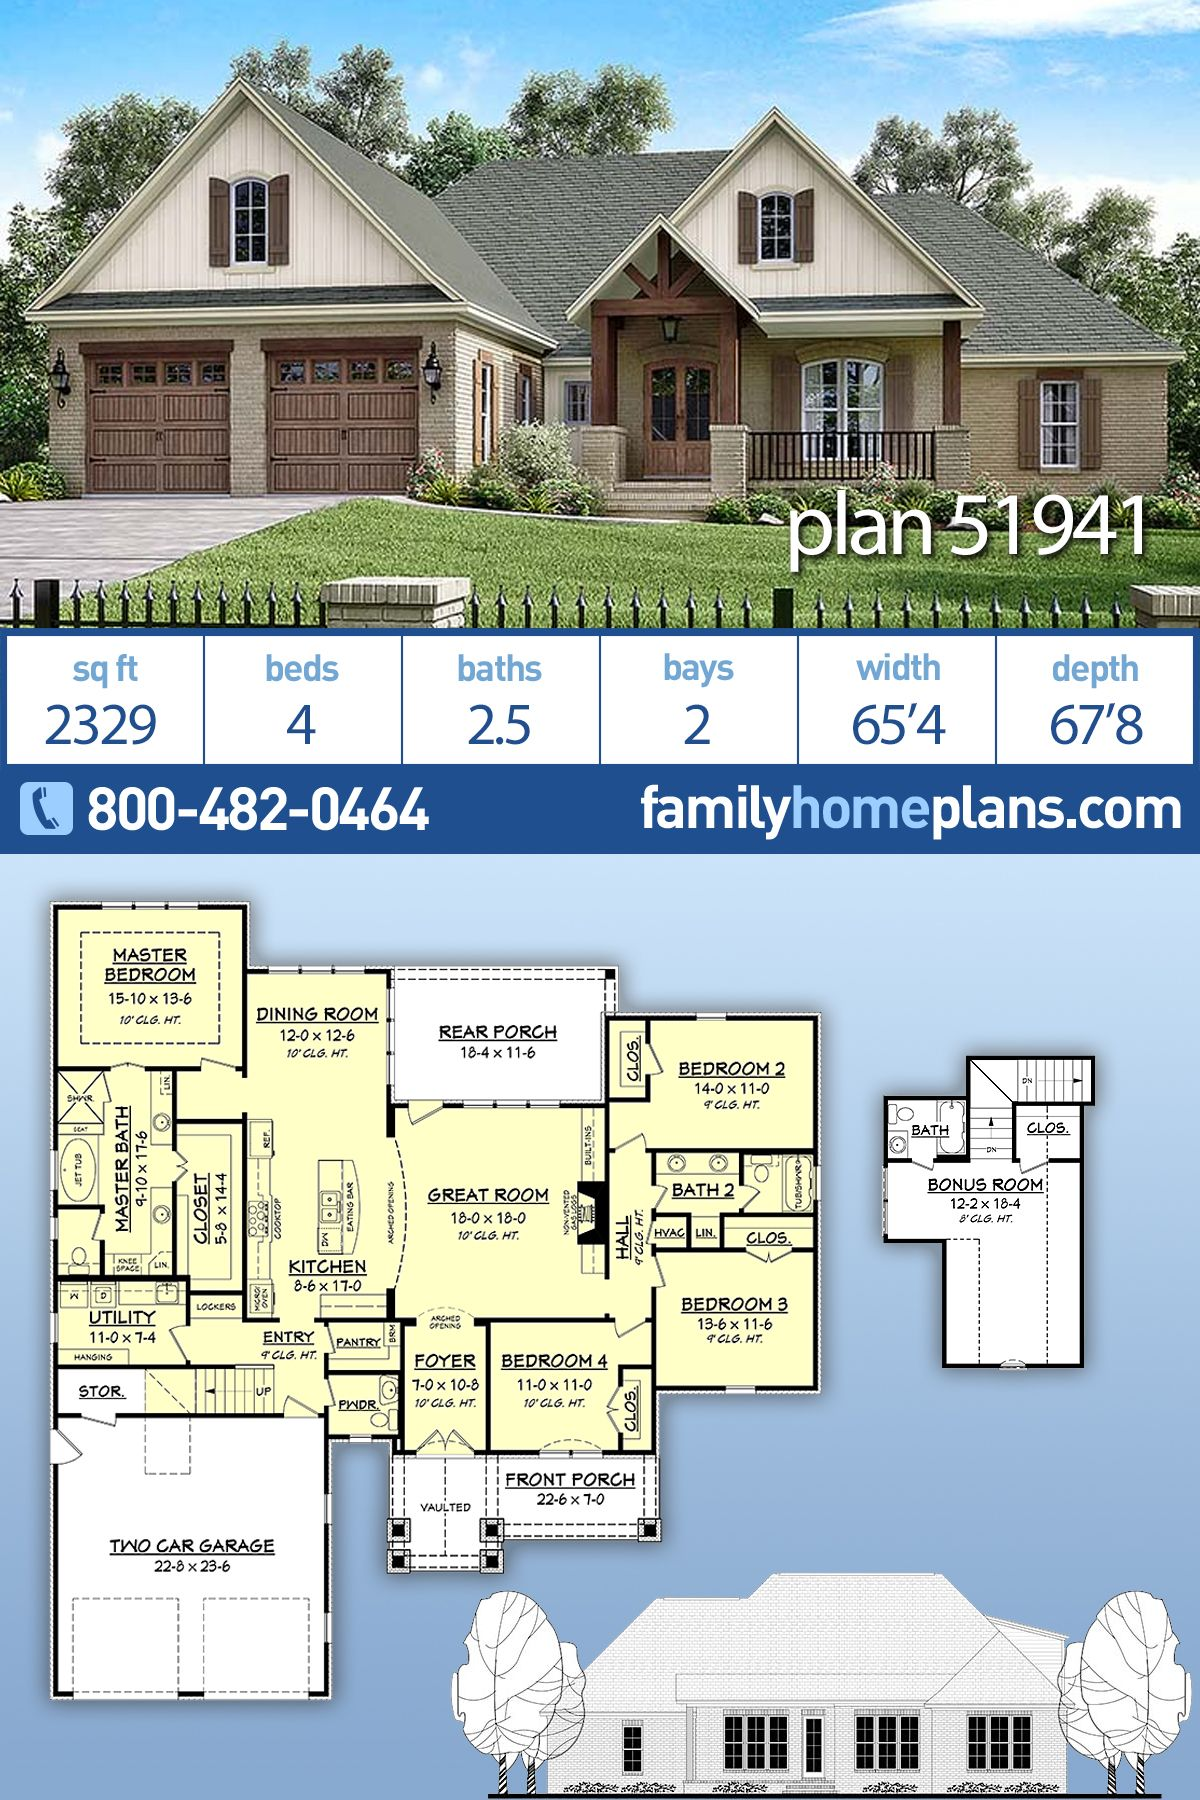 Traditional Style House Plan 51941 With 4 Bed 3 Bath 2 Car Garage Craftsman House Plans Family House Plans House Plans